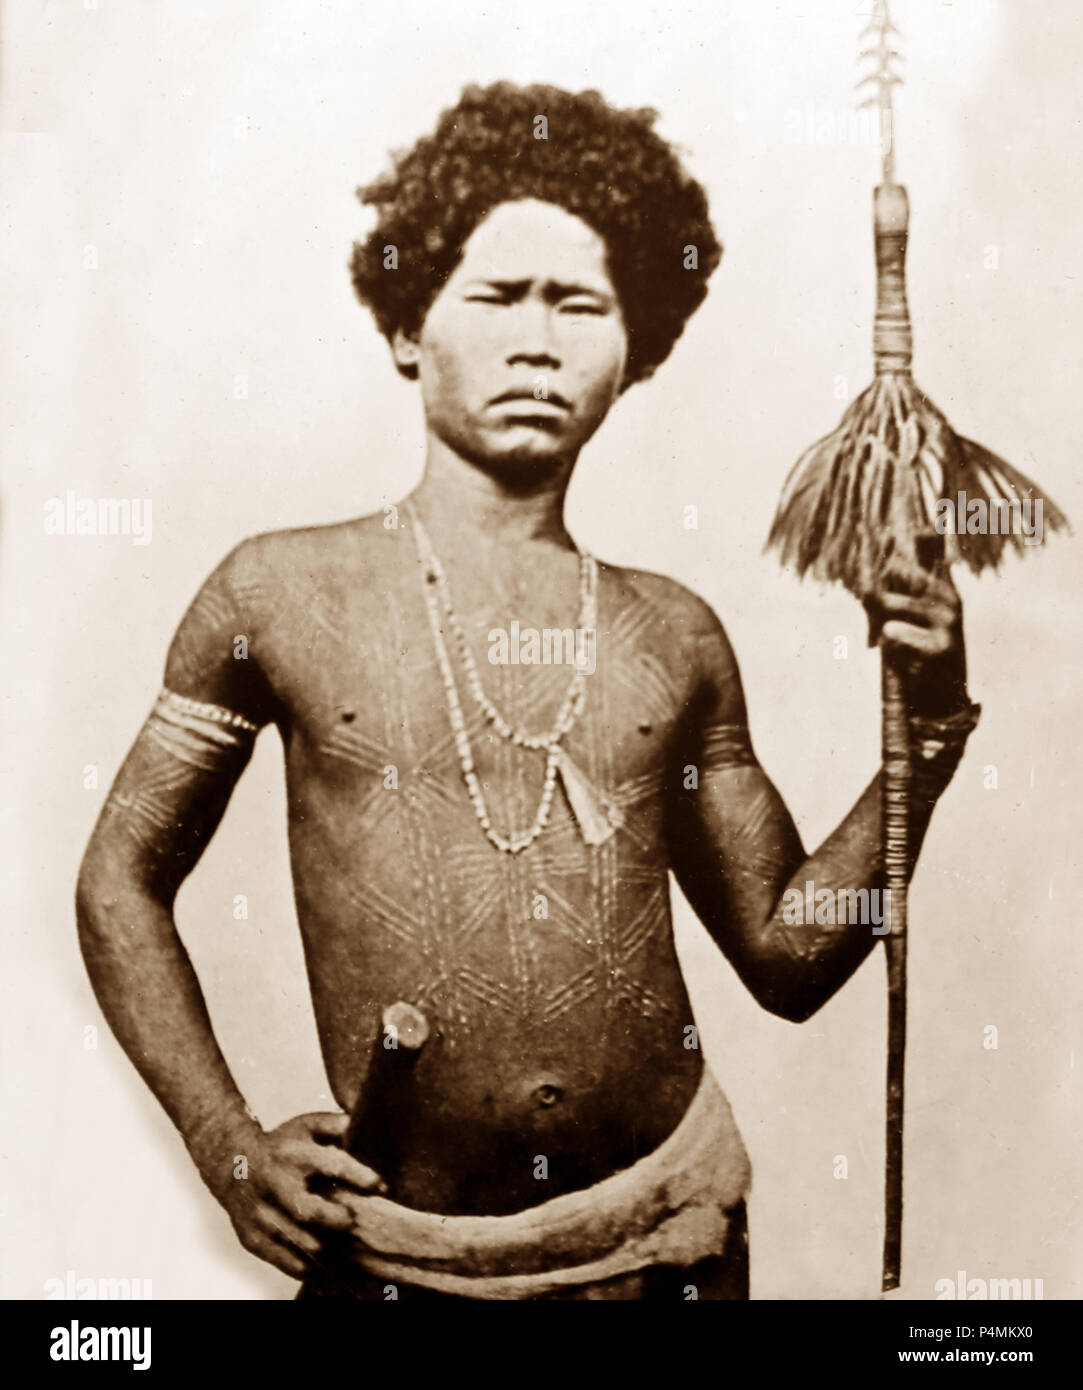 A tribal warrior or hunter, Victorian period - Stock Image